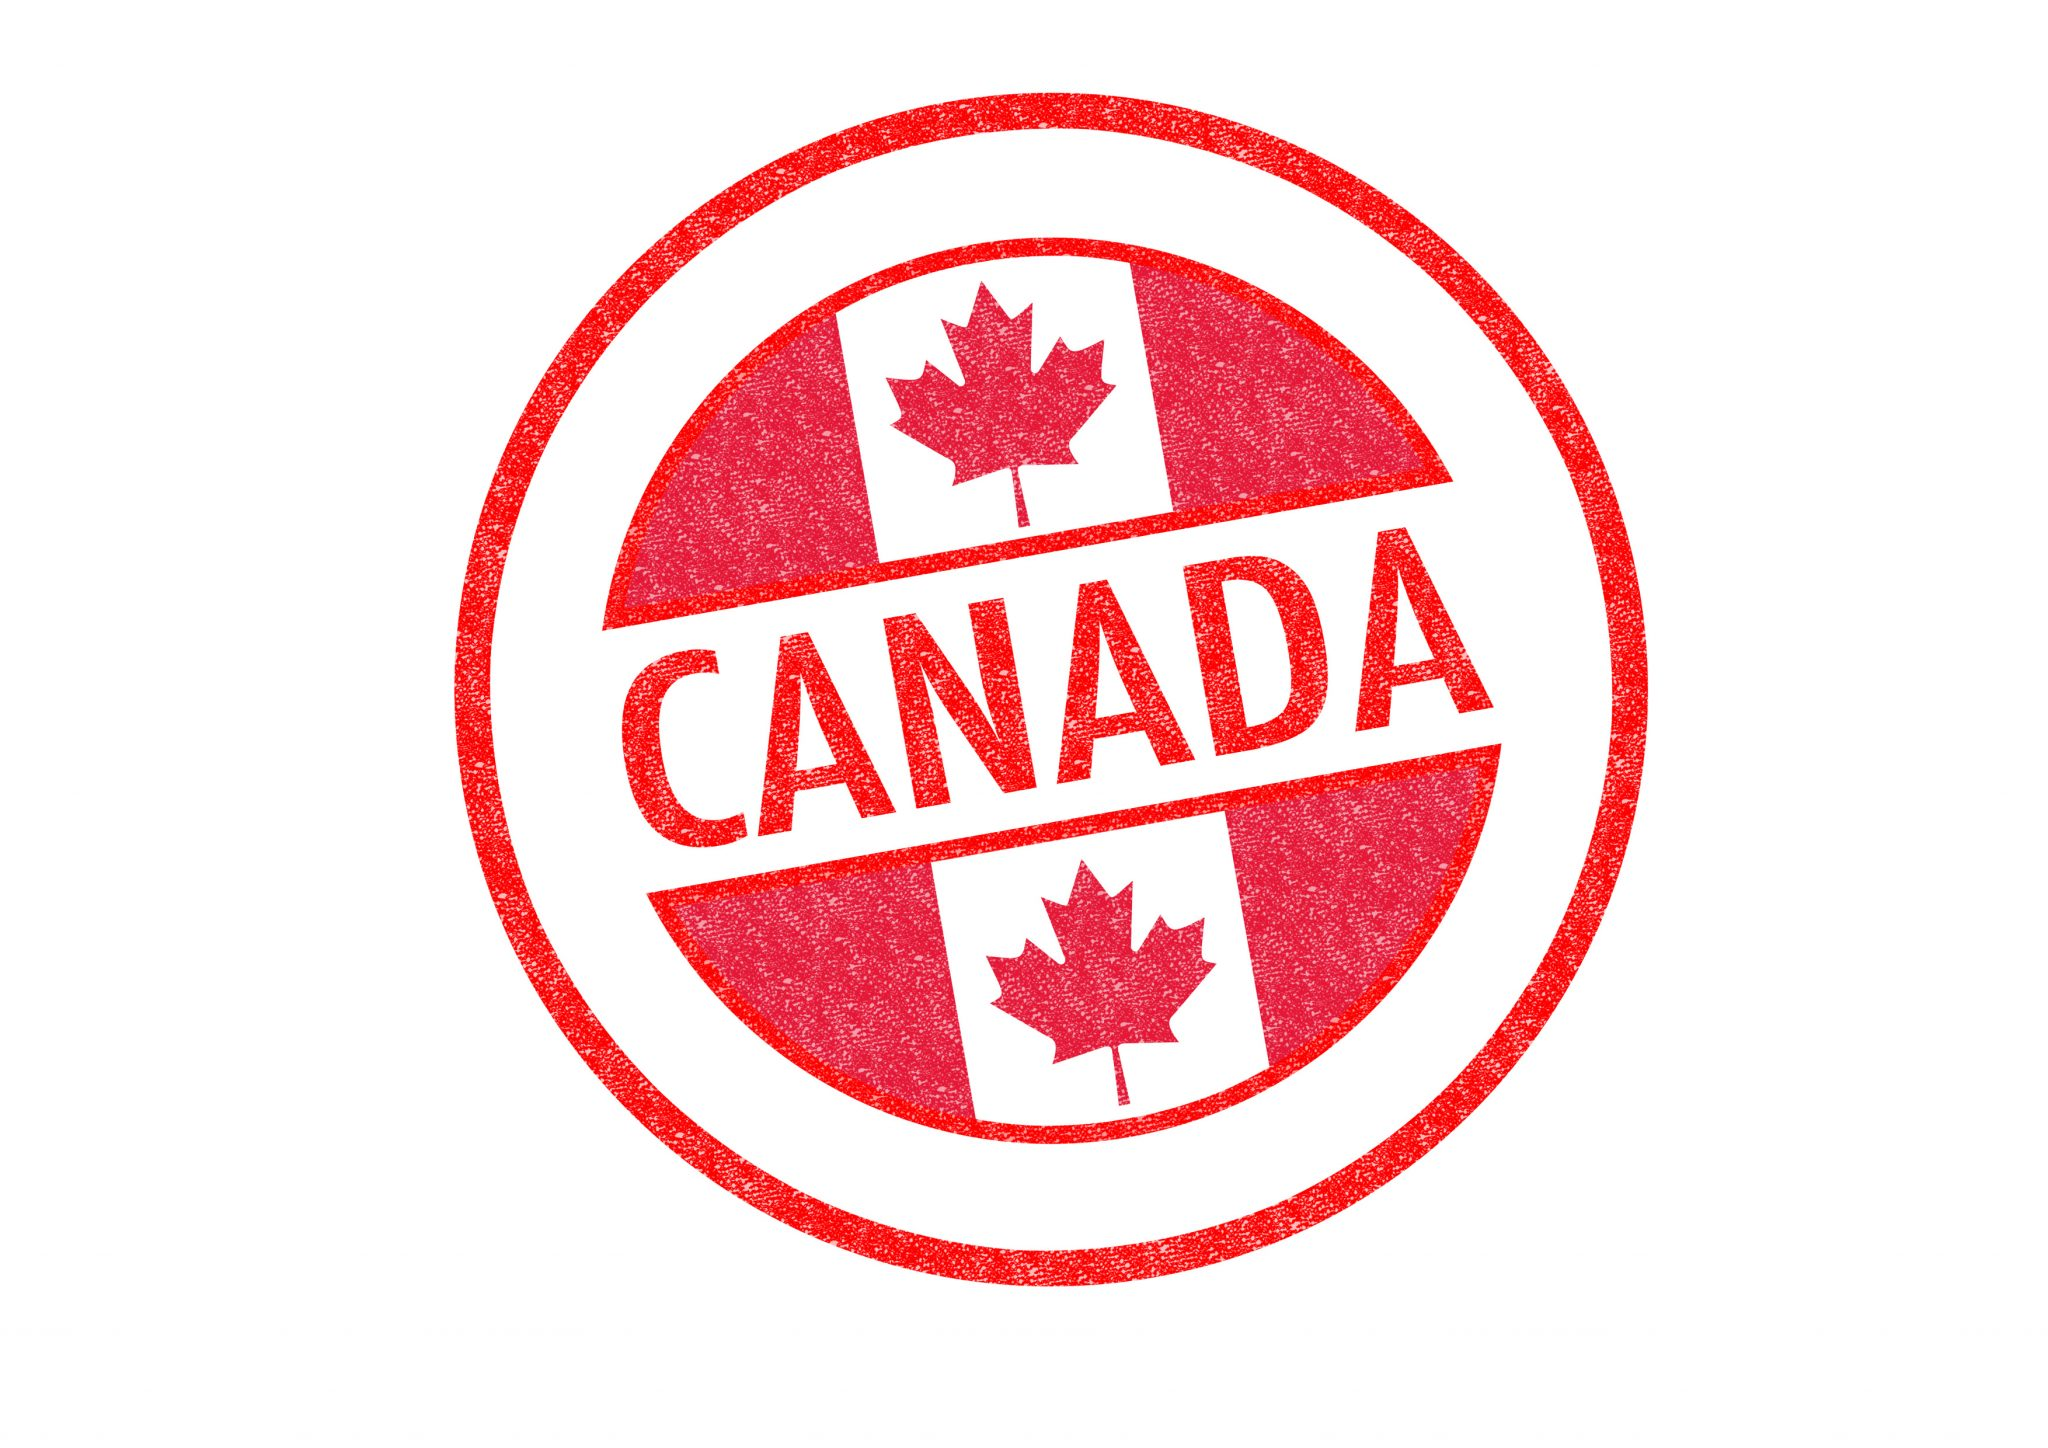 Canada: Using a Broker to Receive Your Insulation Machines